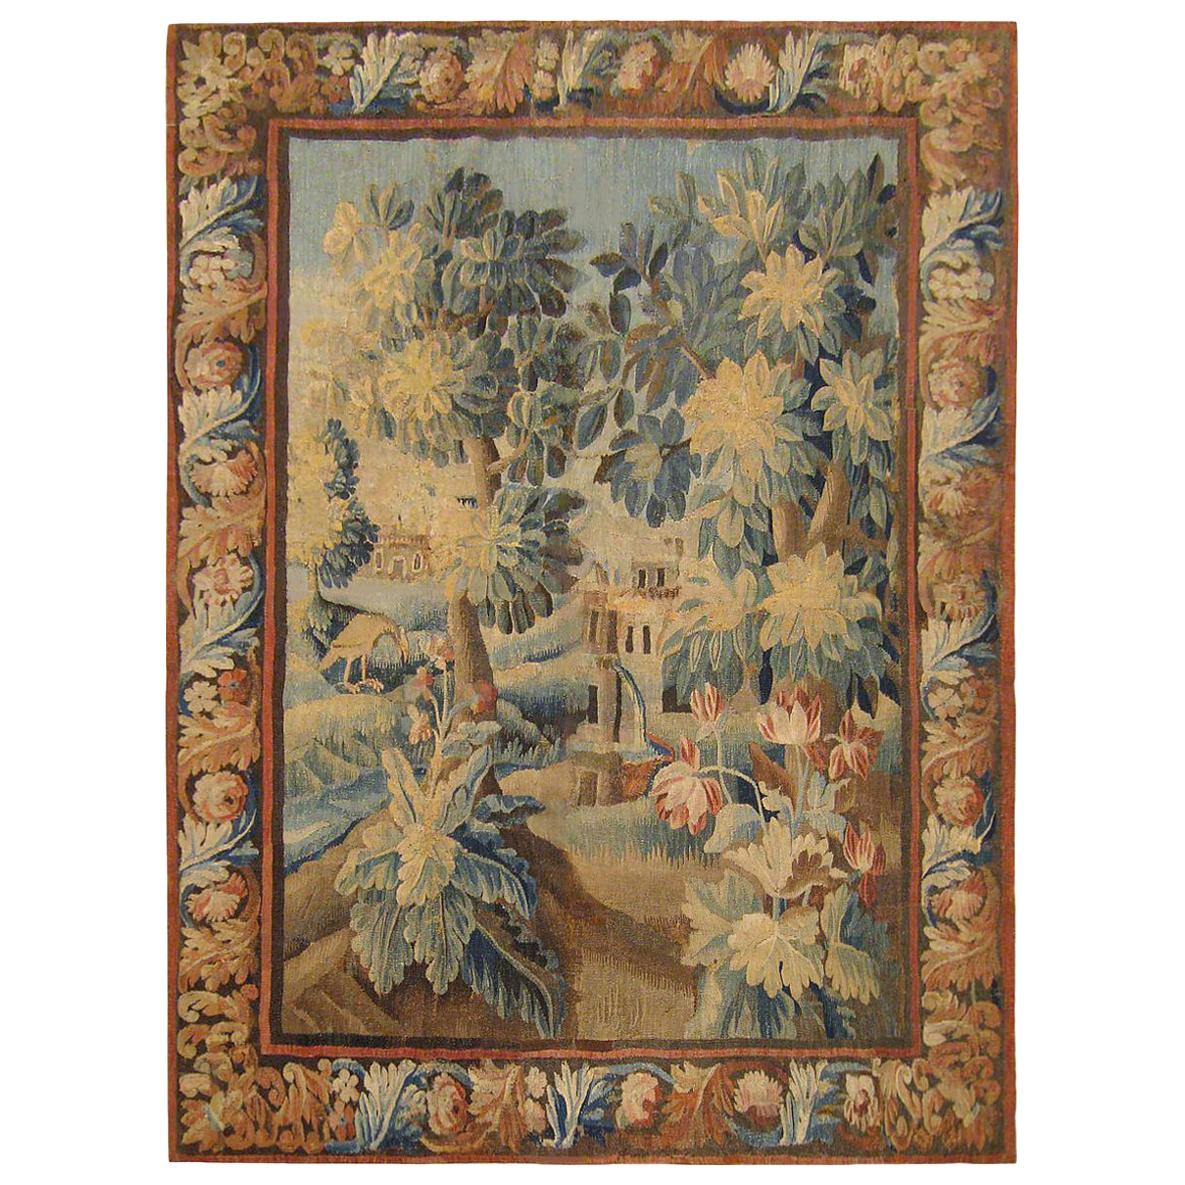 17th Century Flemish Verdure Landscape Tapestry, with Trees, Bushes and Flowers